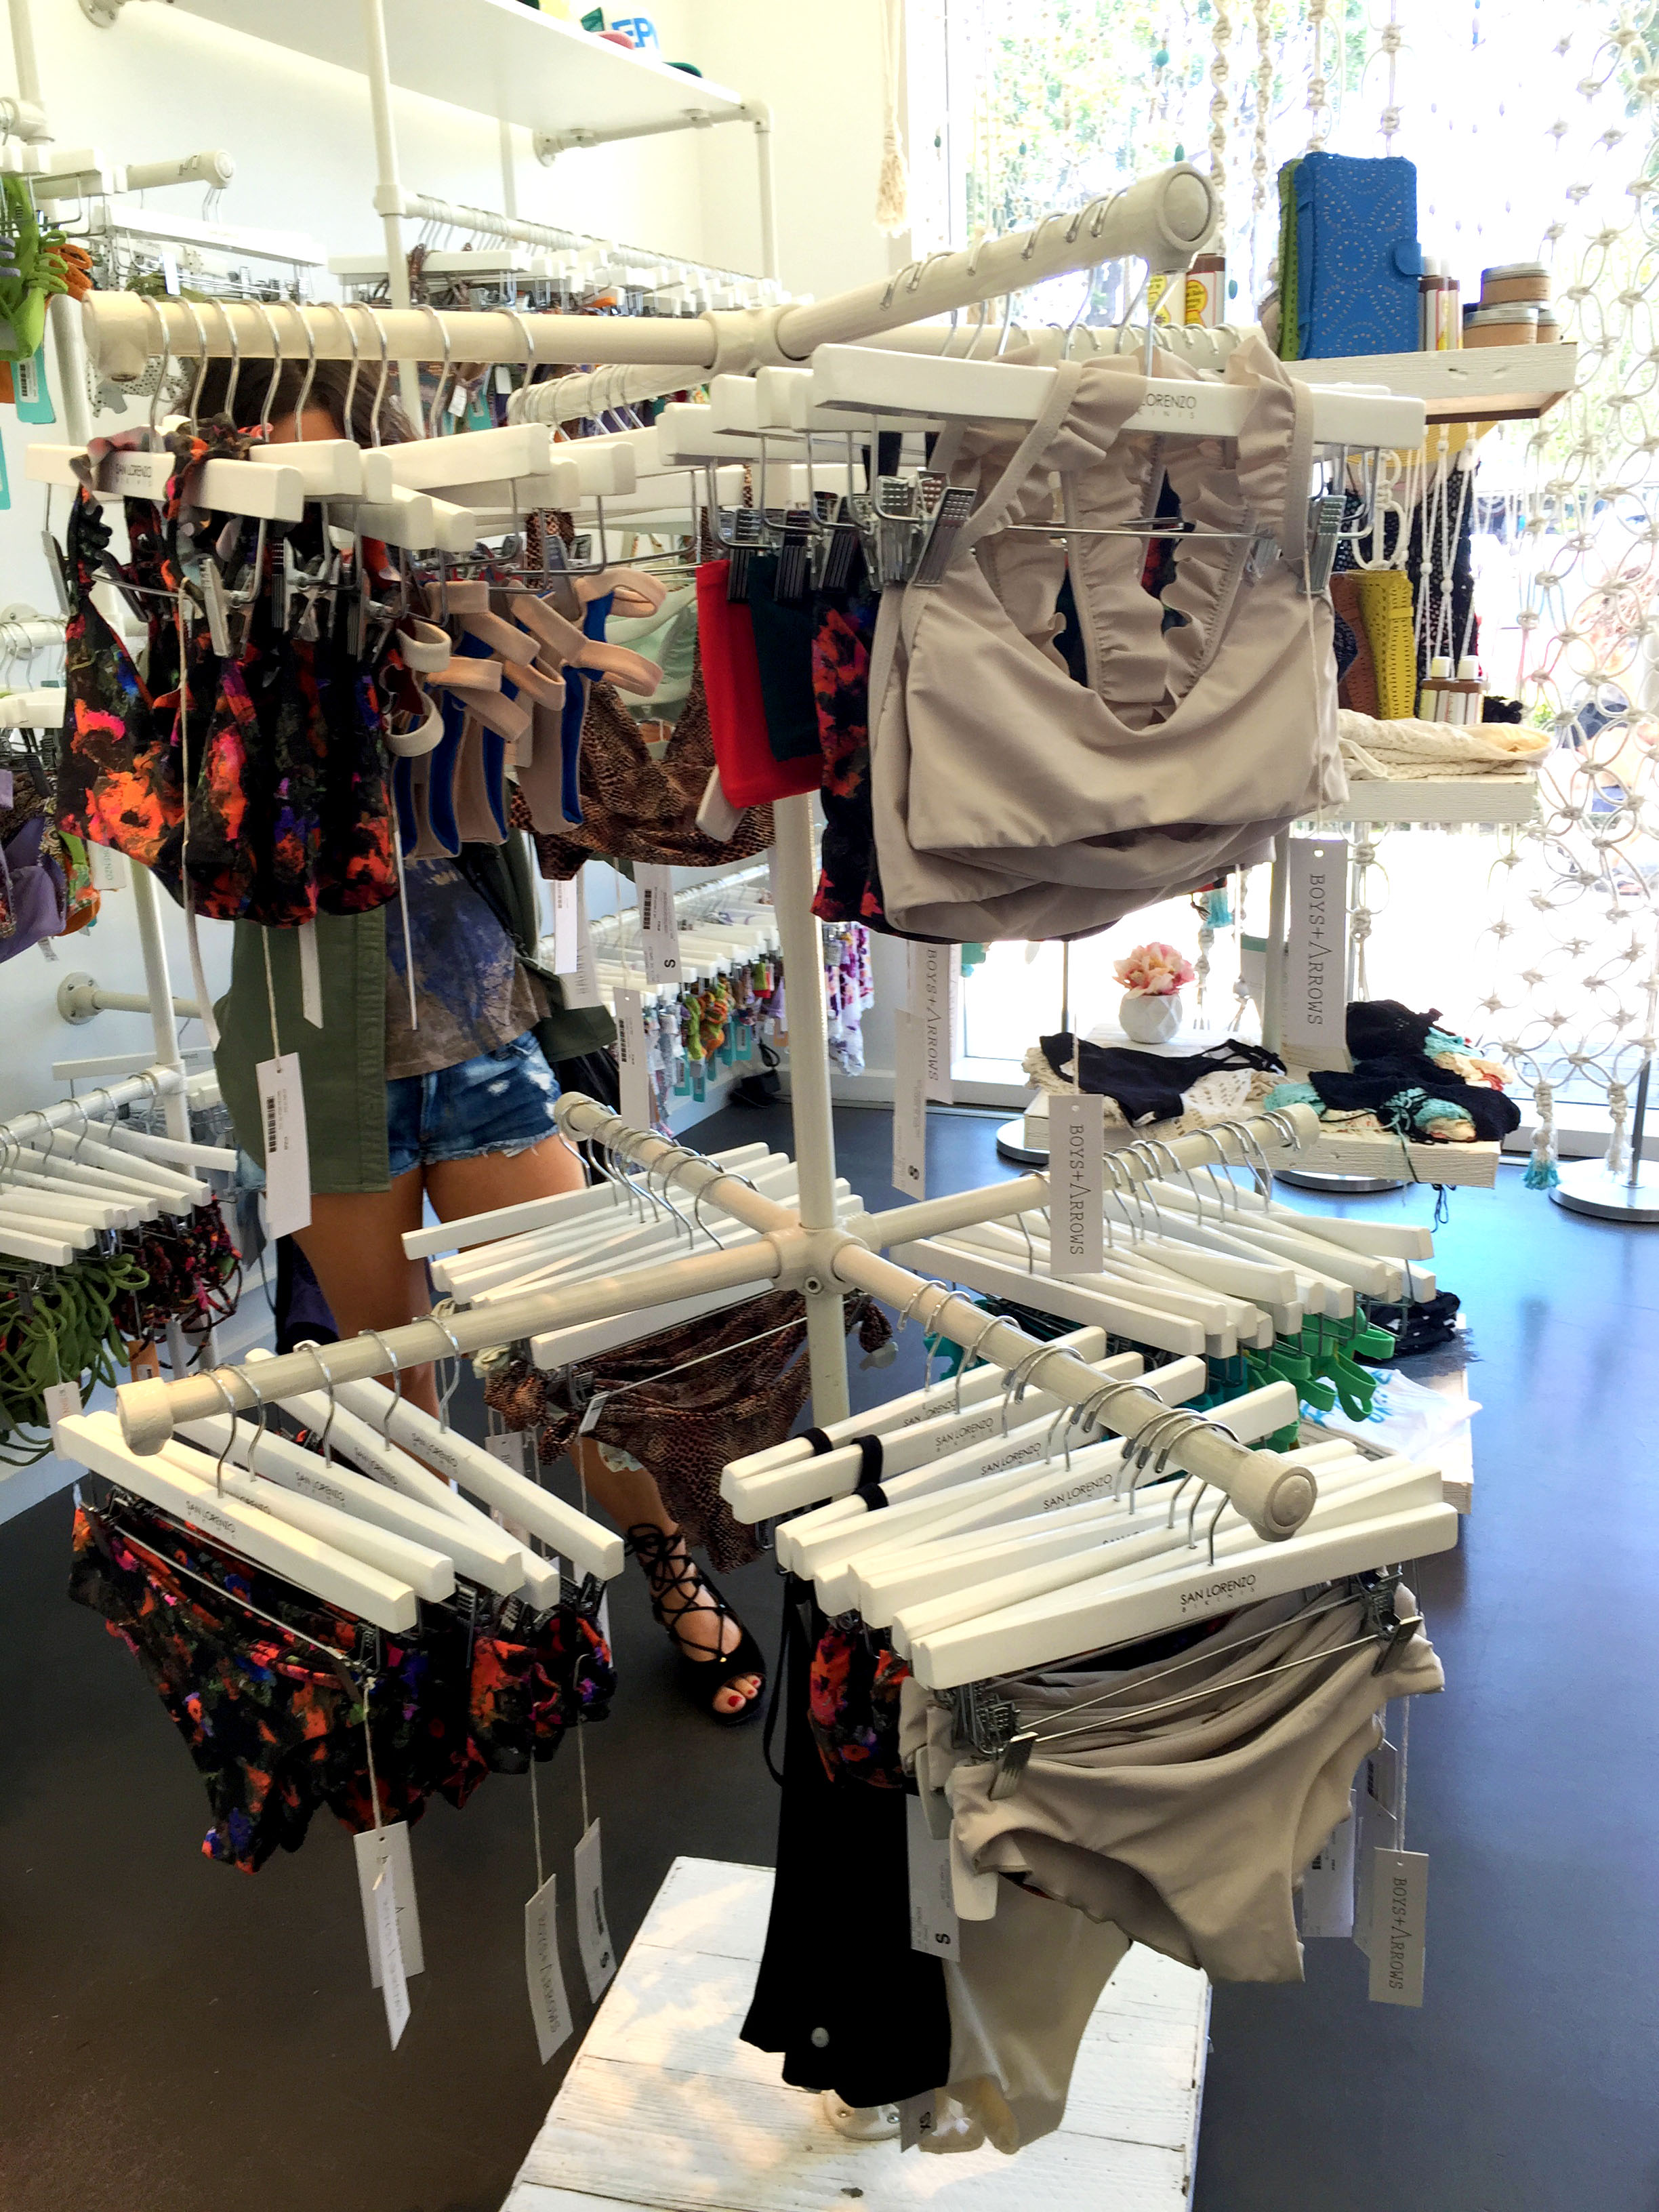 39 Diy Retail Display Ideas From Clothing Racks To Signage Simplified Building